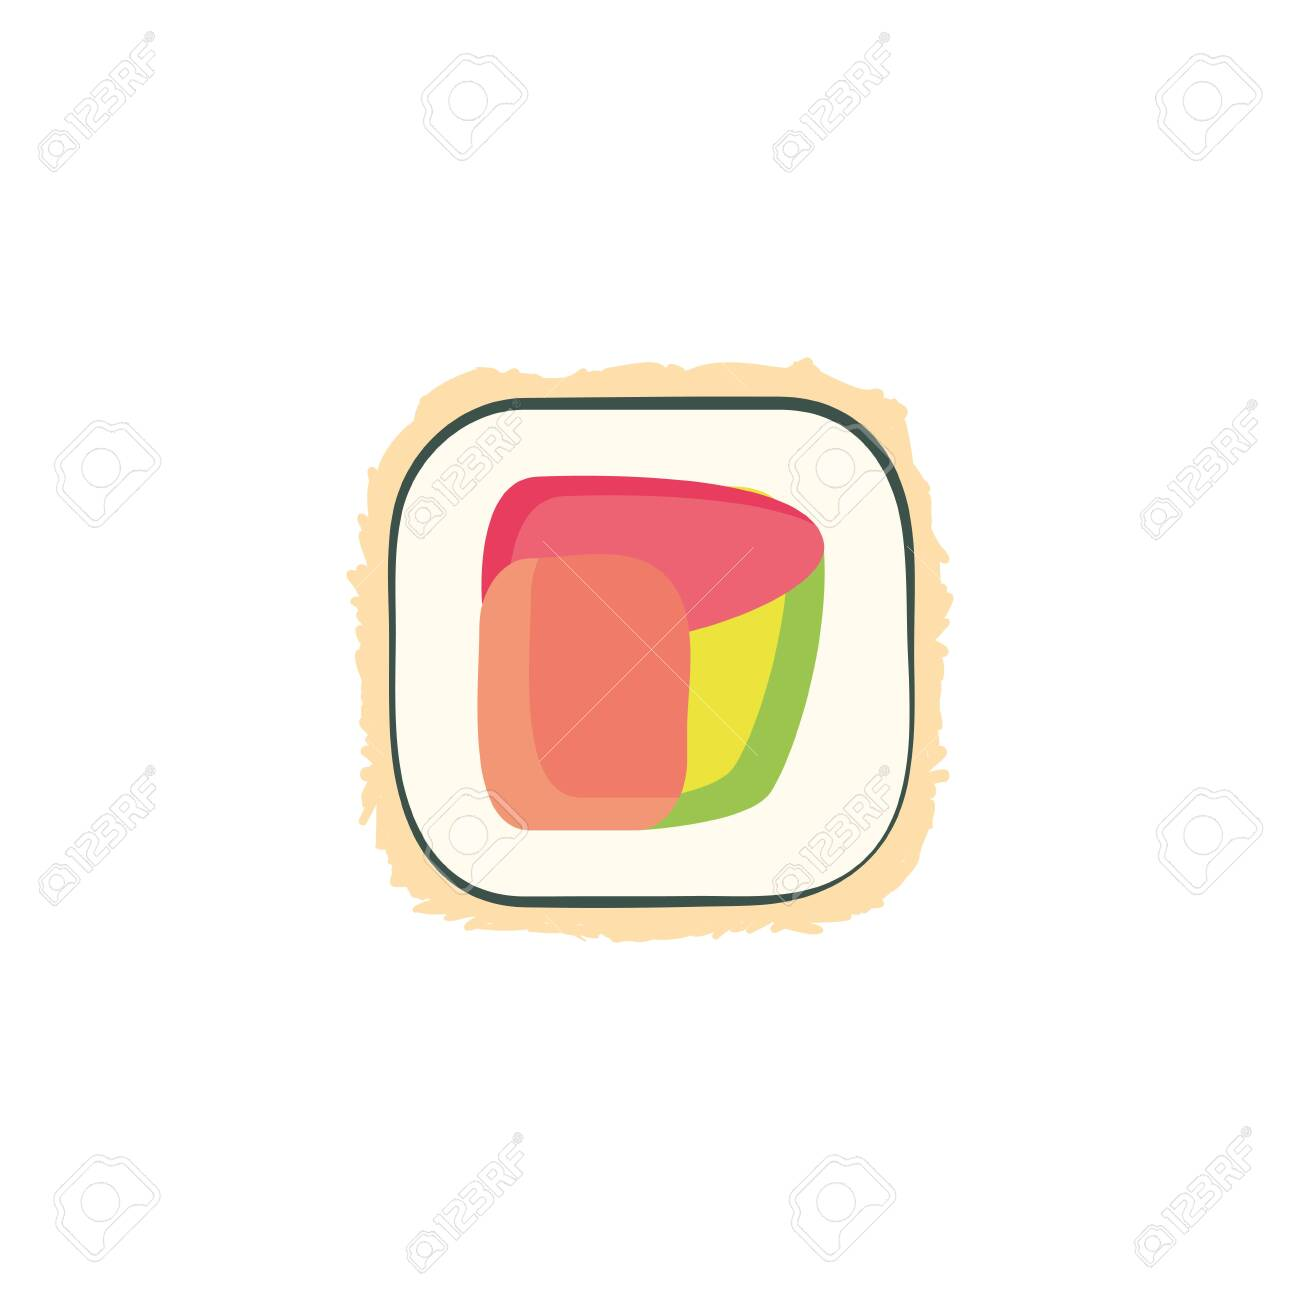 sushi icon design, Eat food restaurant menu dinner lunch cooking and meal theme Vector illustration - 147550272